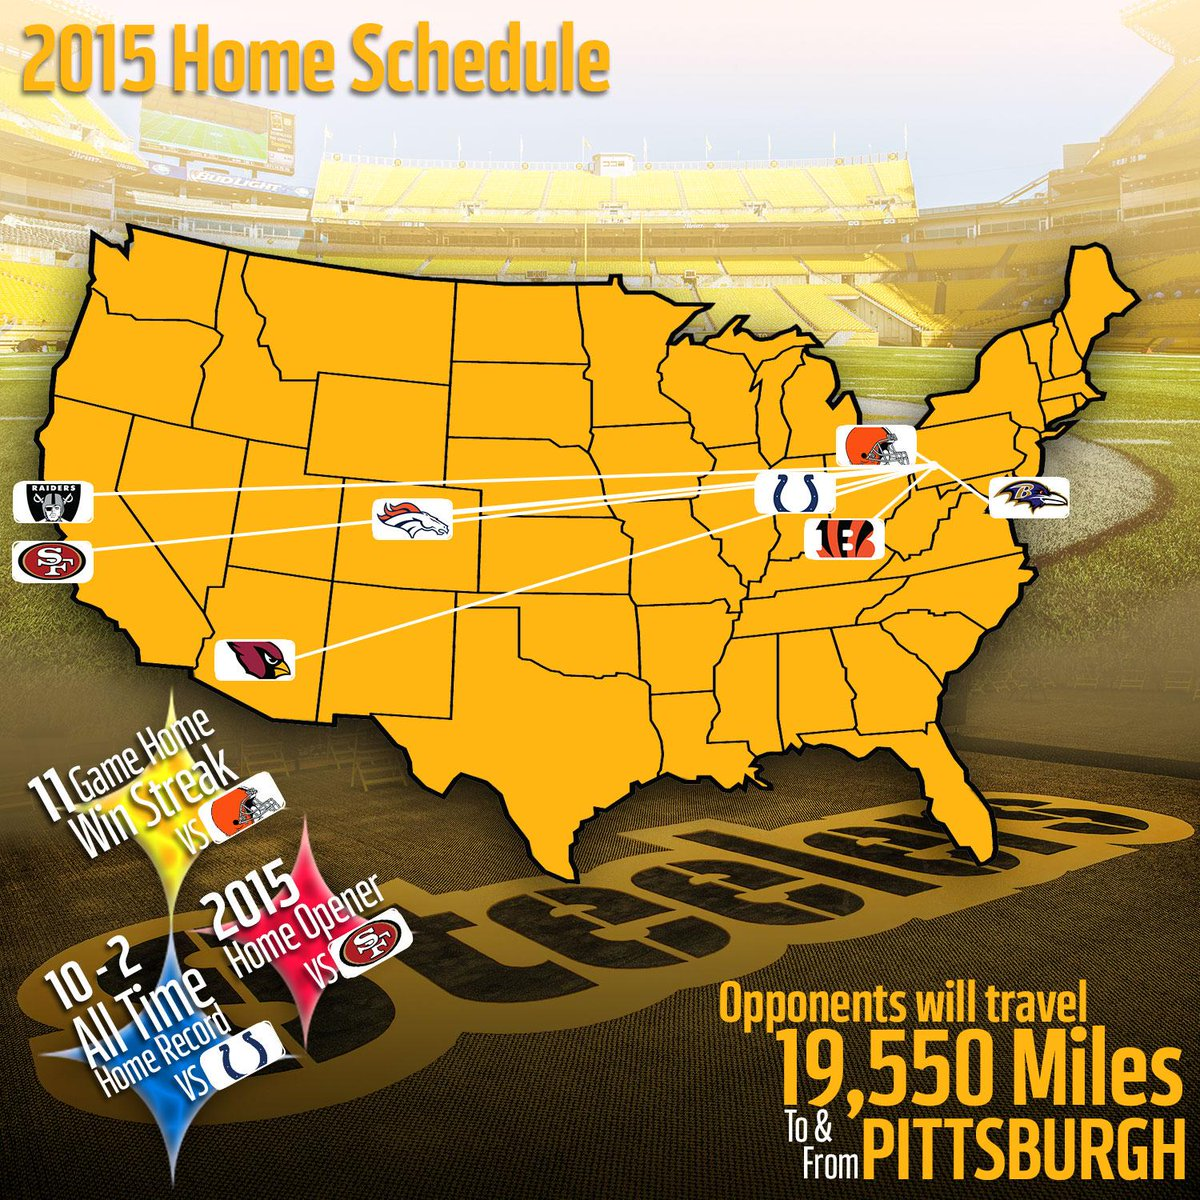 Pittsburgh Steelers On Twitter Home Sweet In 2015 SCHEDULE Tco Clq94afDQS V8DlJiryBh